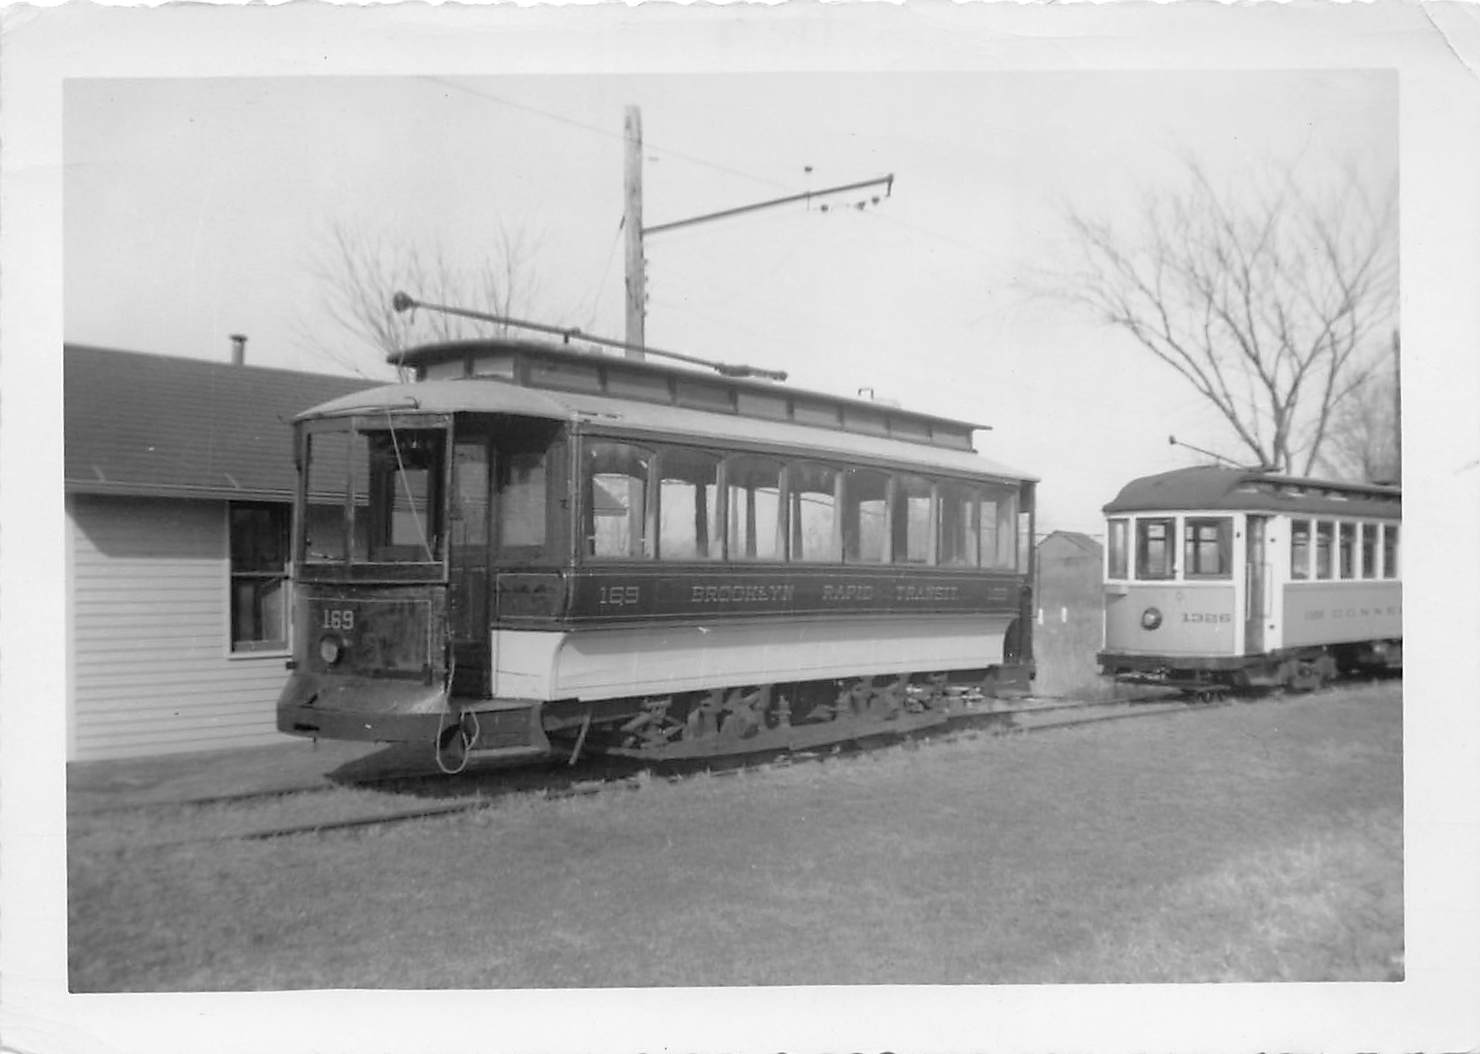 Trolley - Misc, Connecticut CT Postcard